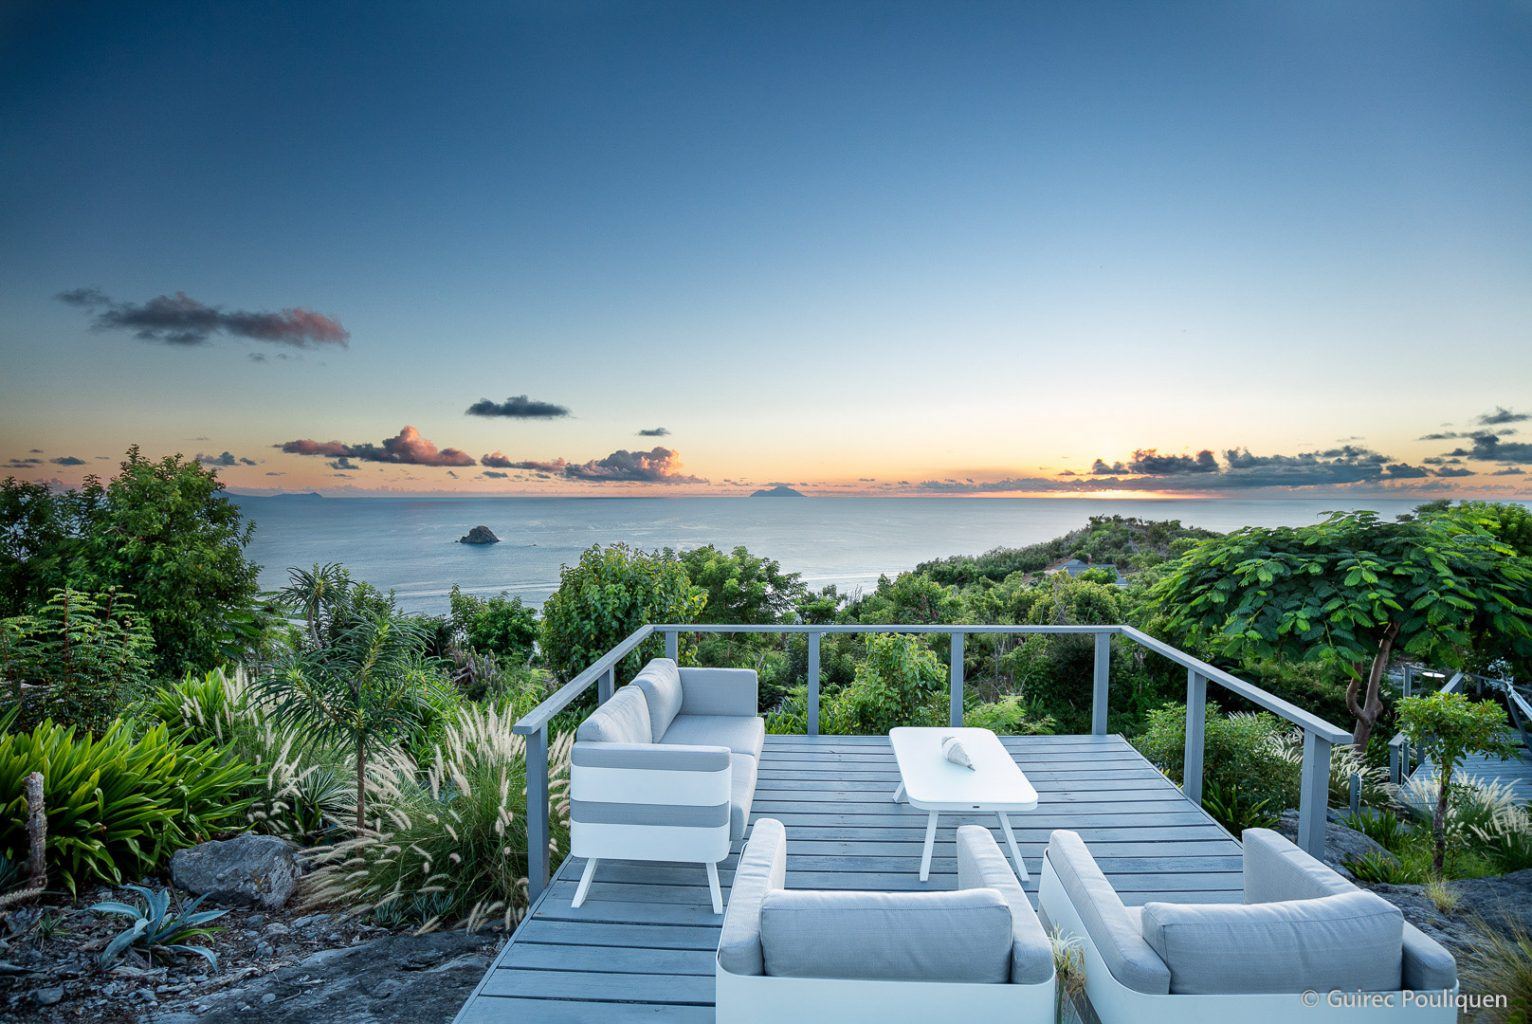 Villa Byzance - Sunset Villa for Rent on the Top of Colombier St Barth with Breakfast Delivery - Main AreaVilla Byzance - Sunset Villa for Rent on the Top of Colombier St Barth with Breakfast Delivery - Terrace